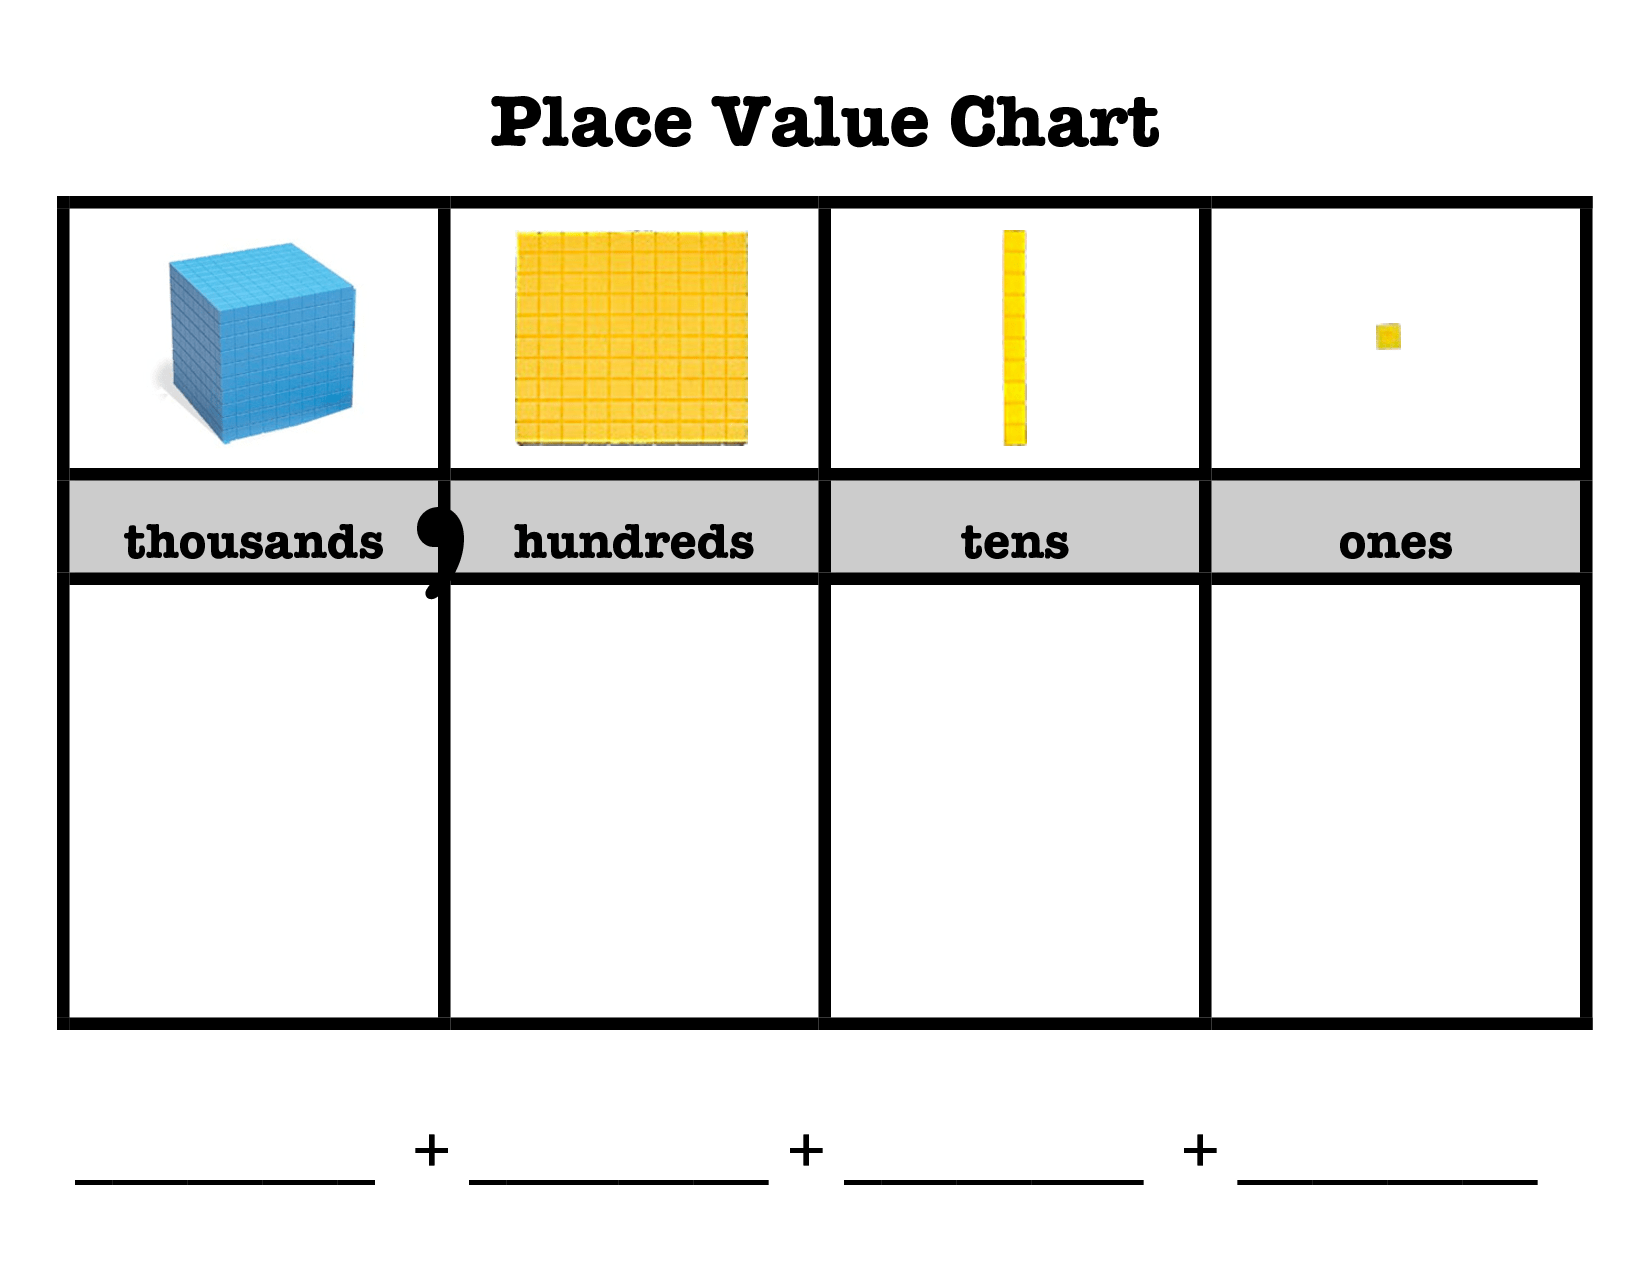 Thousands Place Value Chart